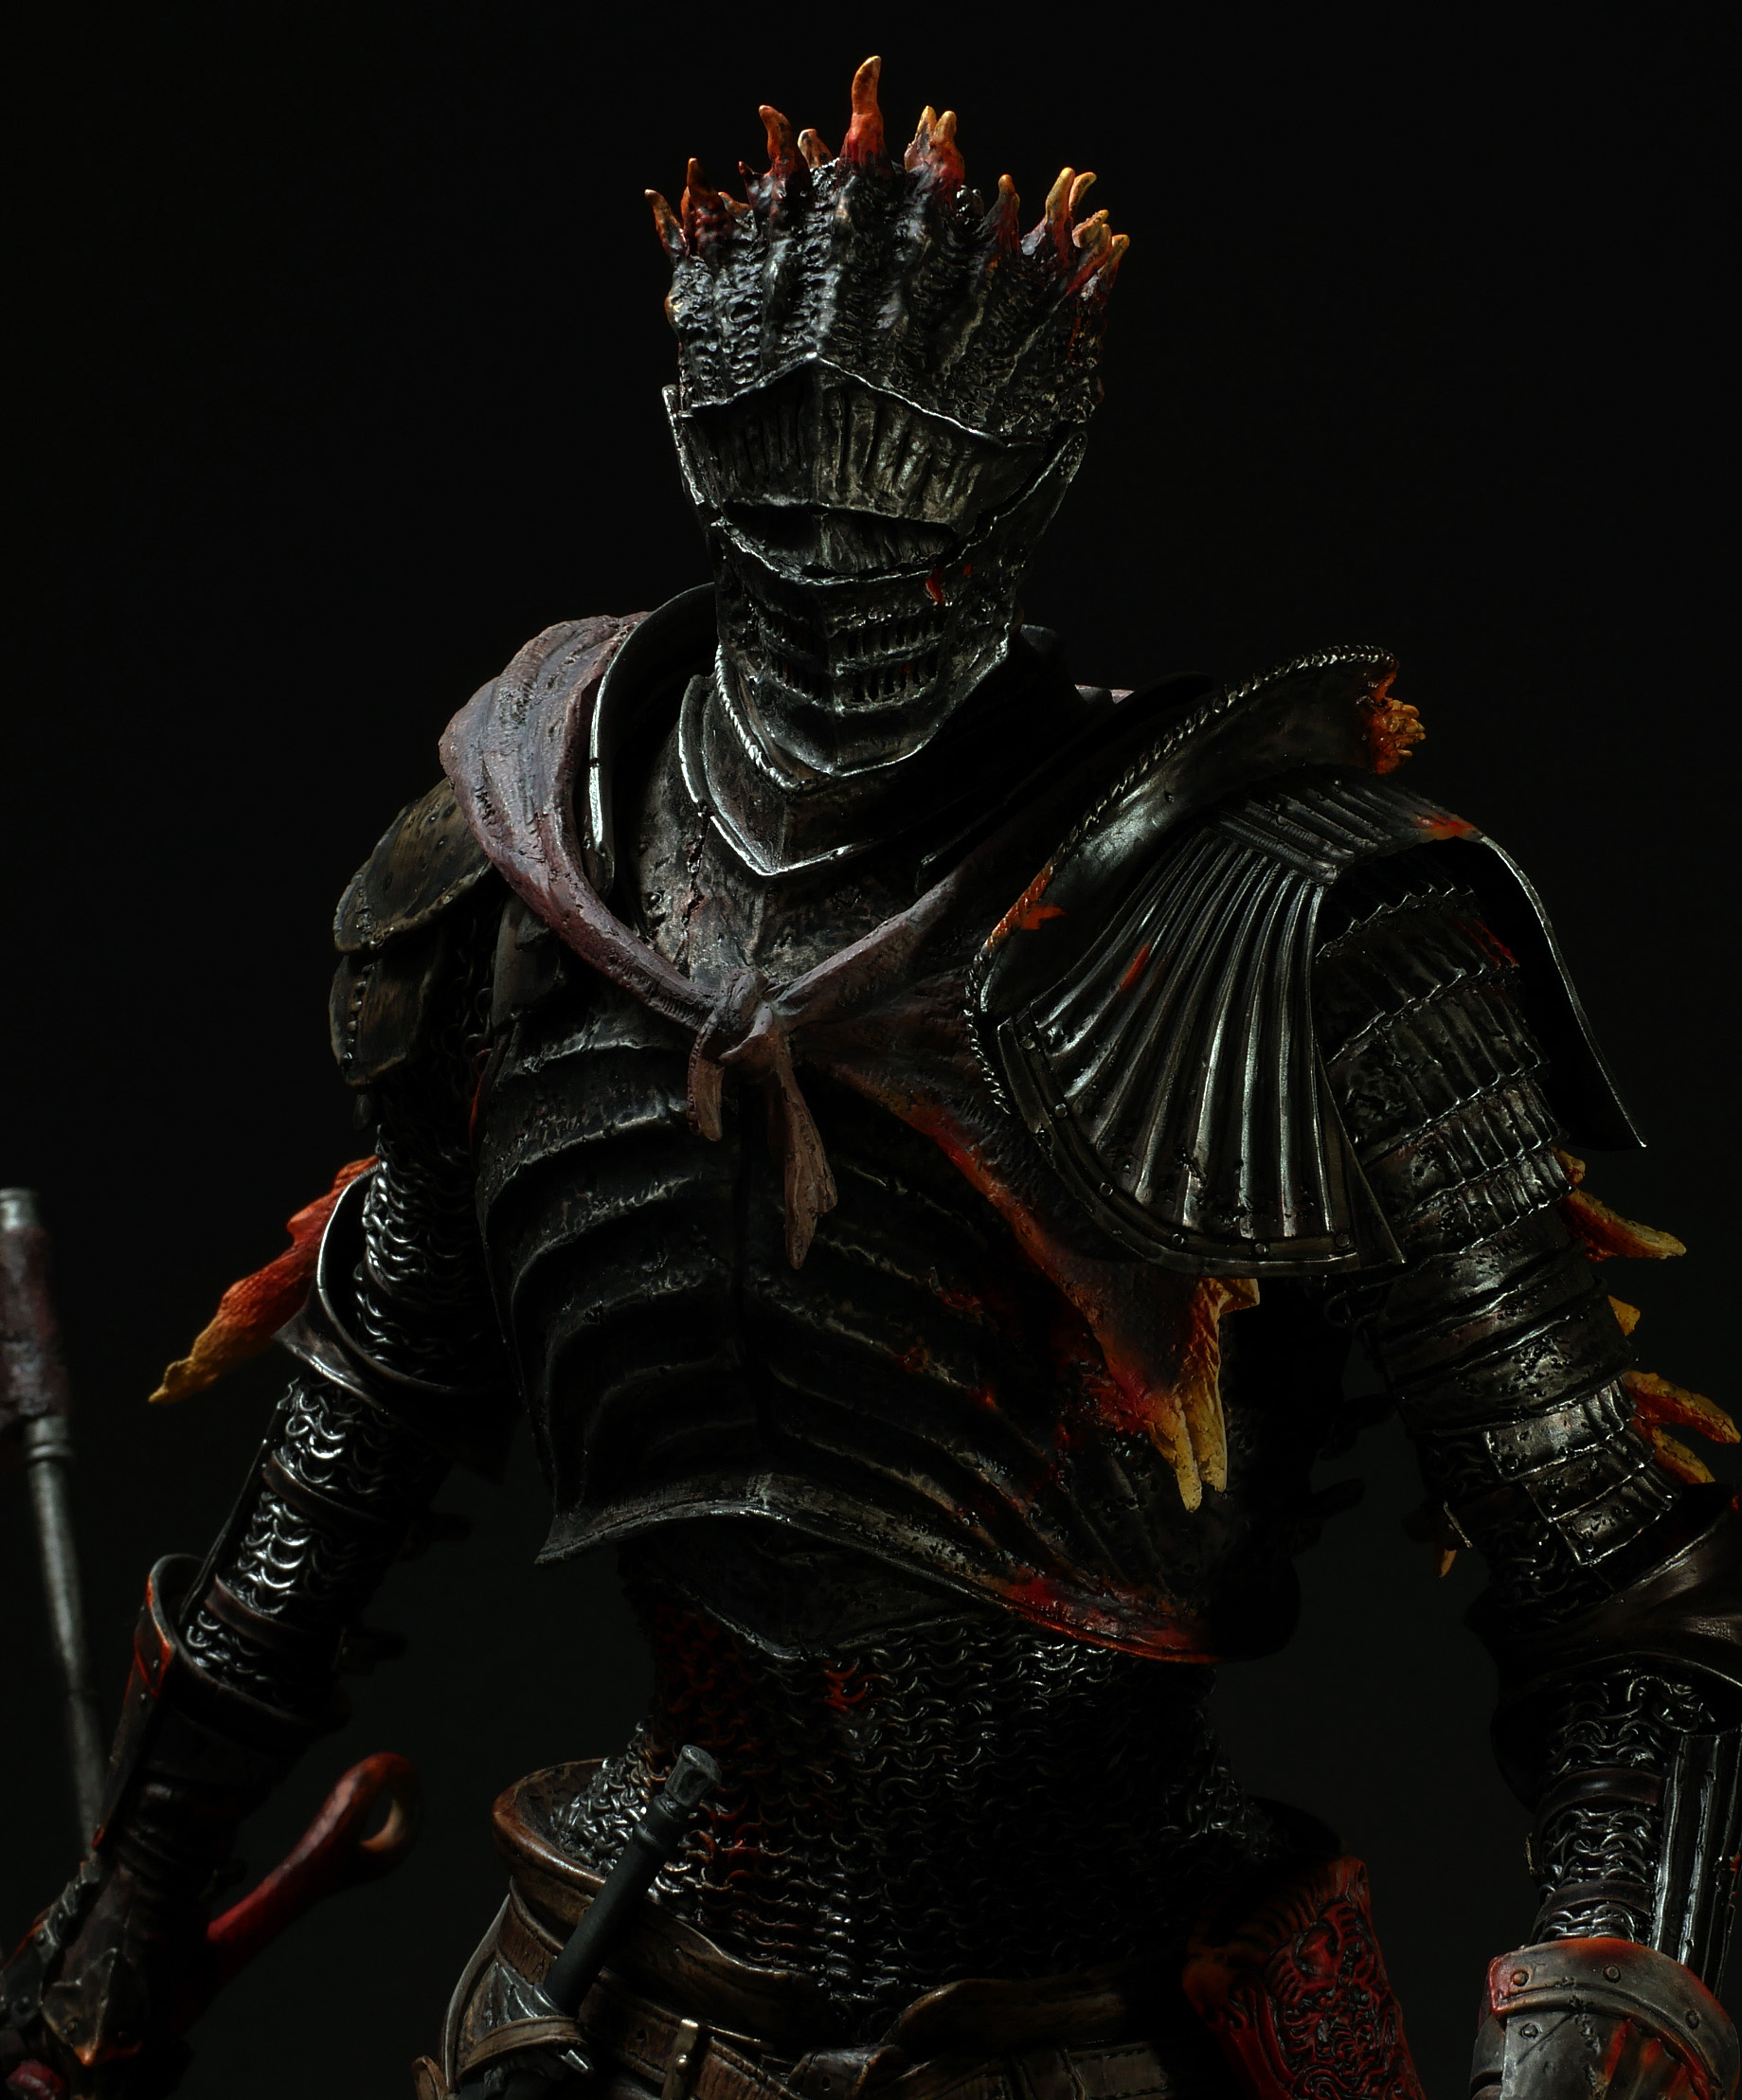 Photos of the Dark Souls 3 - Souls of Cinder Statue ...